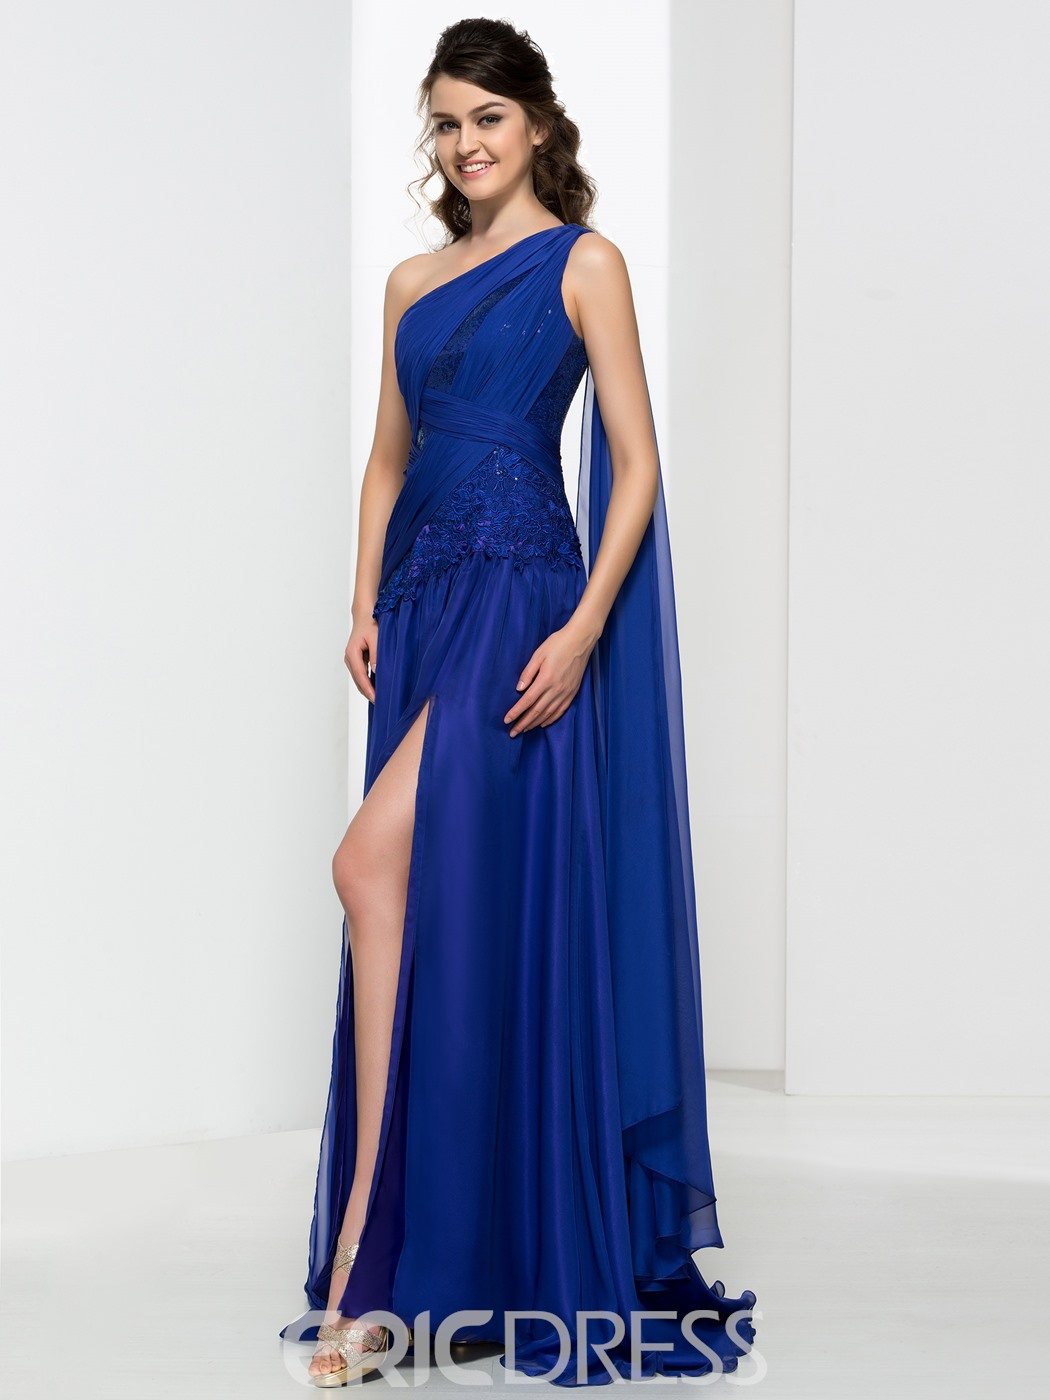 Ericdress One Shoulder Pleats Appliques Sequins Evening Dress With Split-Front